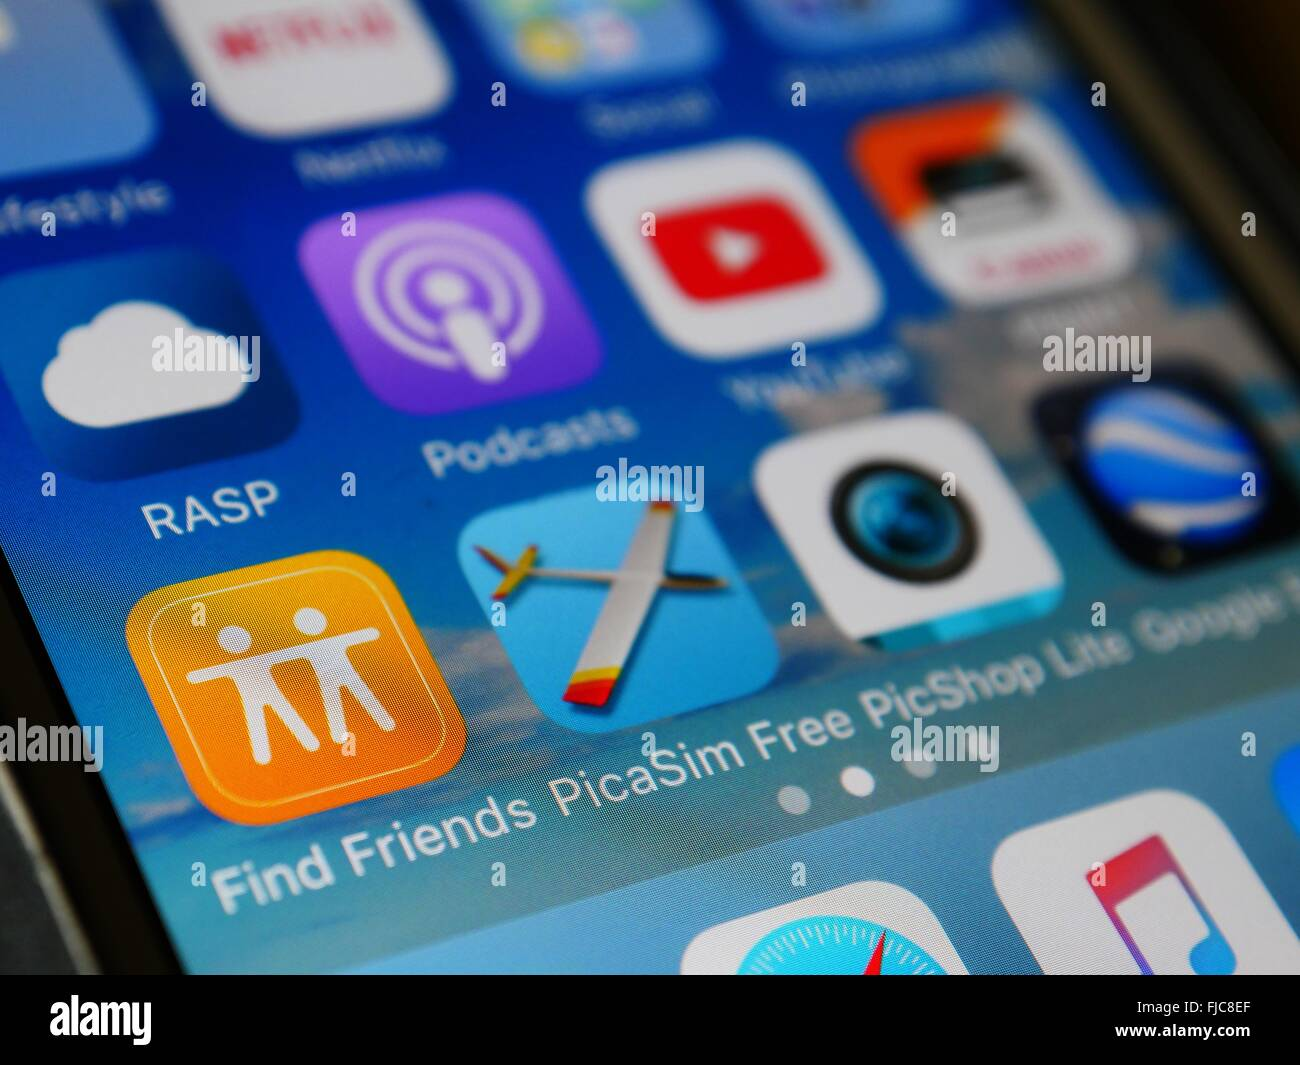 Apple Iphone screen sowing apps - Stock Image